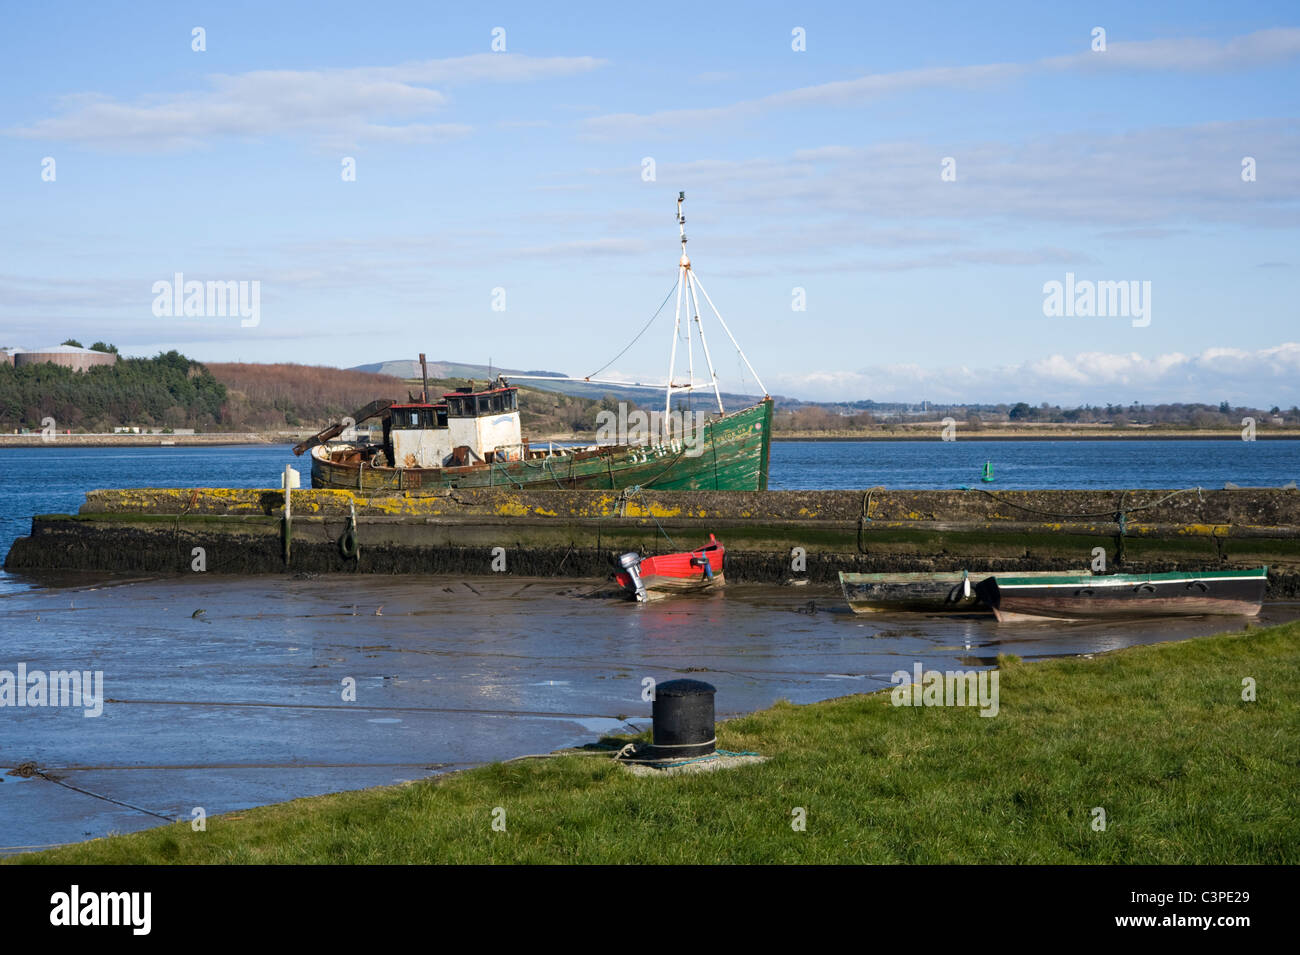 6b031900fe Co Waterford Stock Photos   Co Waterford Stock Images - Alamy